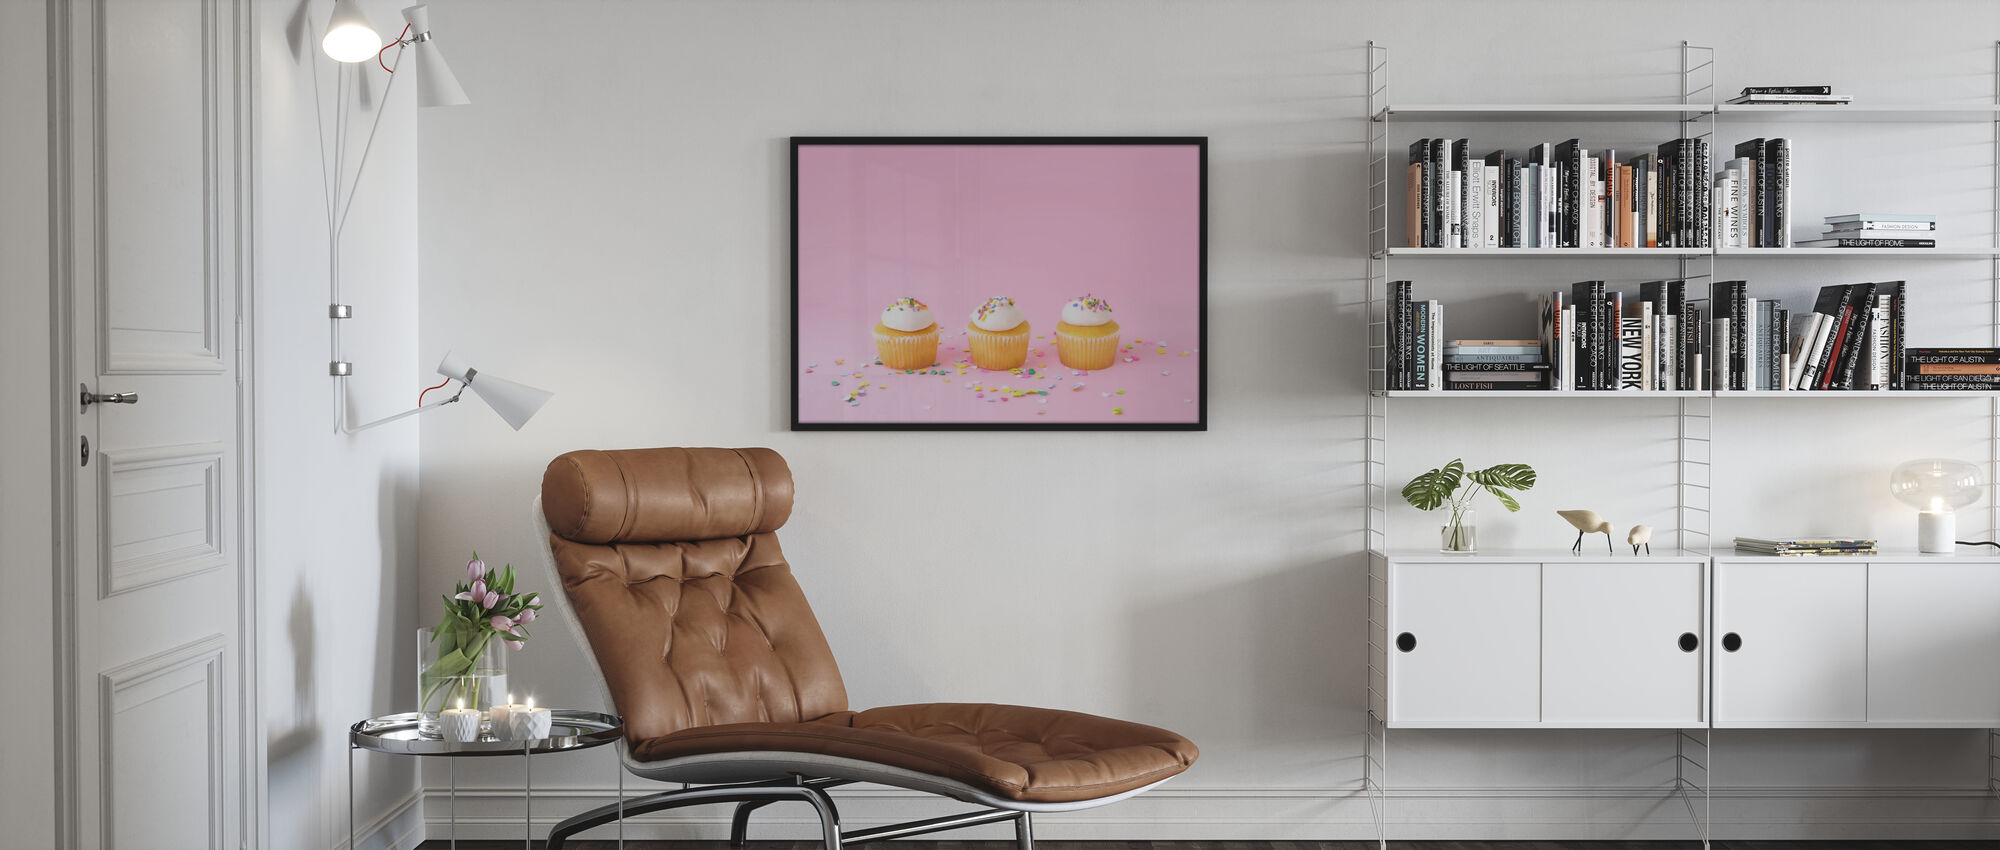 Frosted Cupcakes - Poster - Living Room